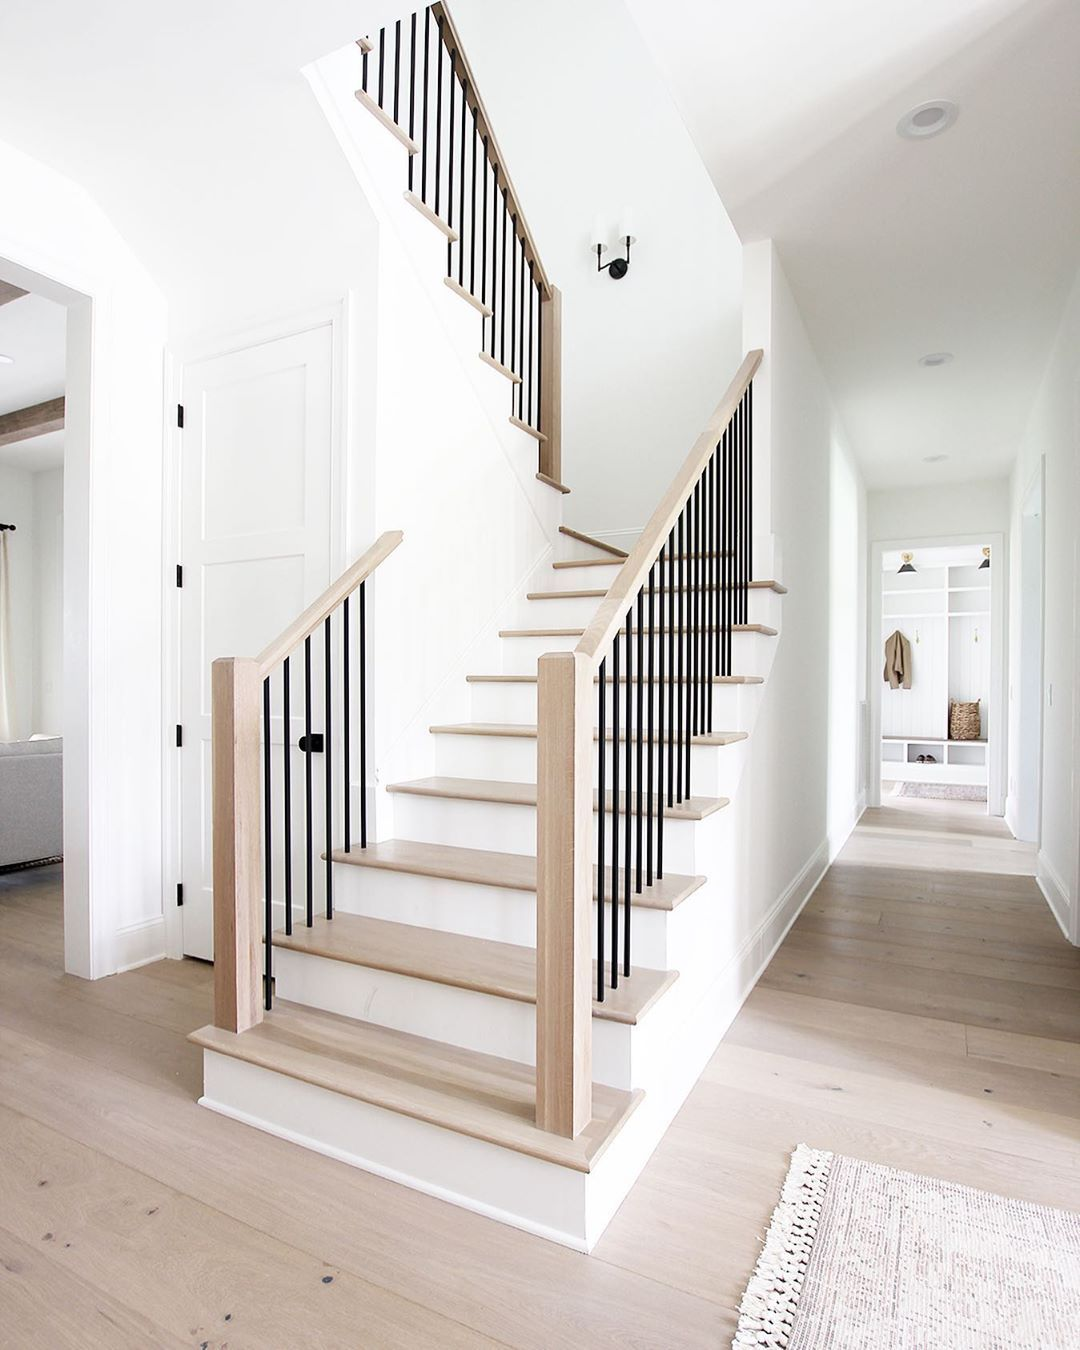 Brooke Henry On Instagram This Morning I Ve Been Talking All About Our Staircase This Was One Of Those Thing In 2020 House Staircase Staircase Design House Stairs